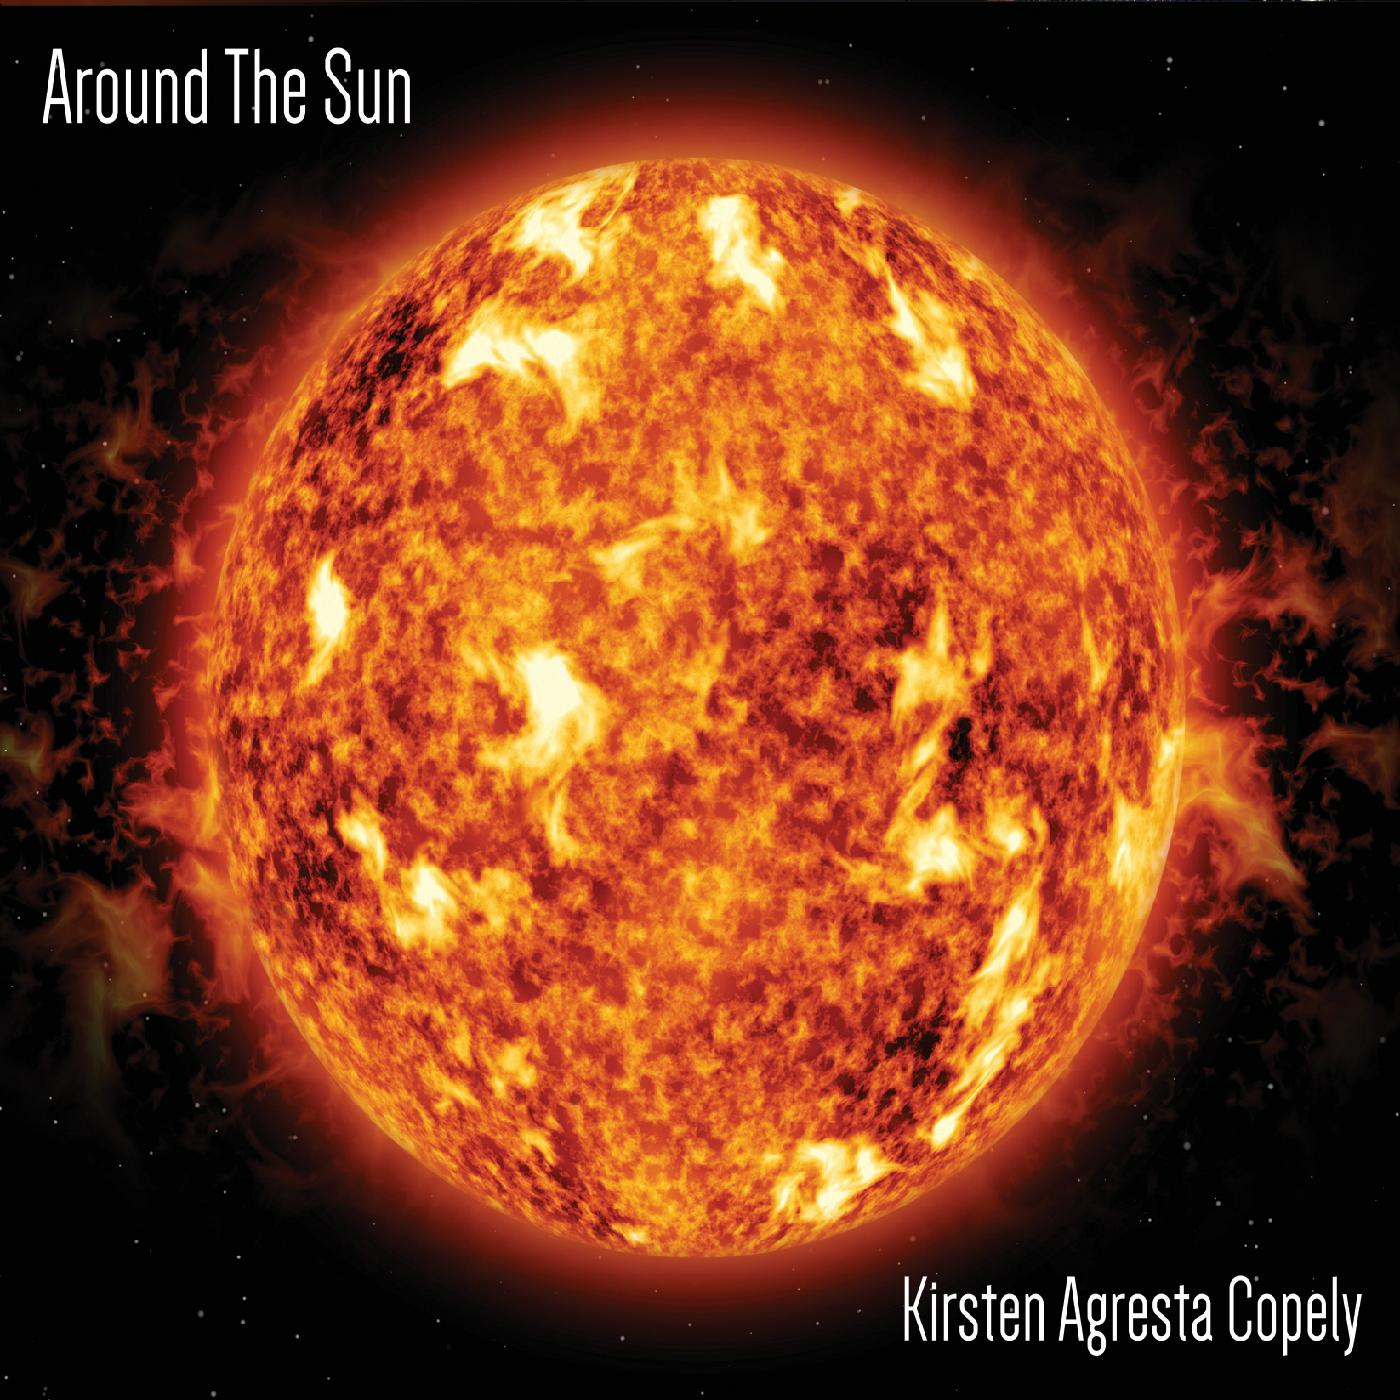 Kirsten Agresta Copely - Around the Sun